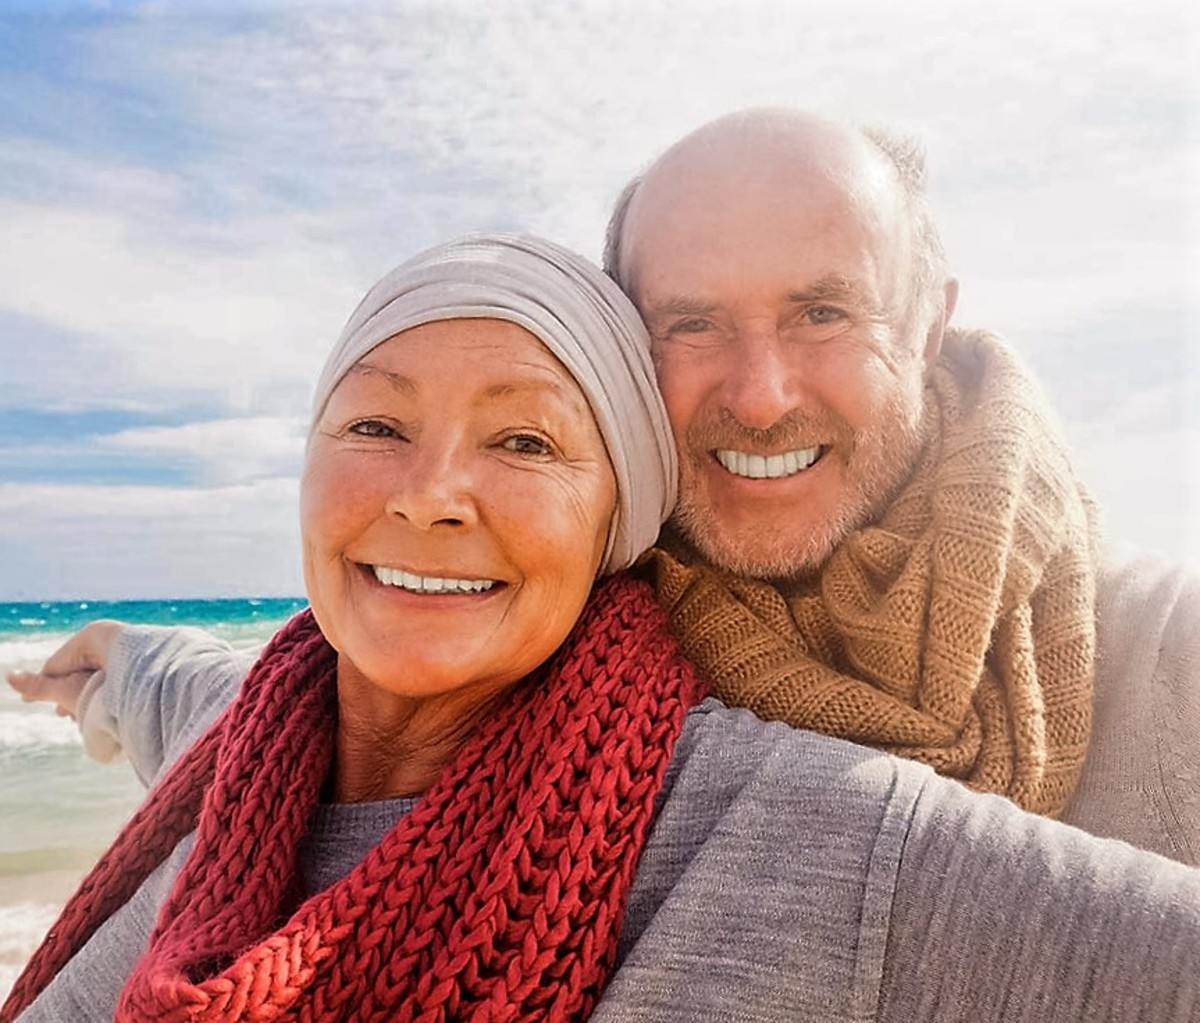 Positive Outlook Improves Quality of Life as We Get Older